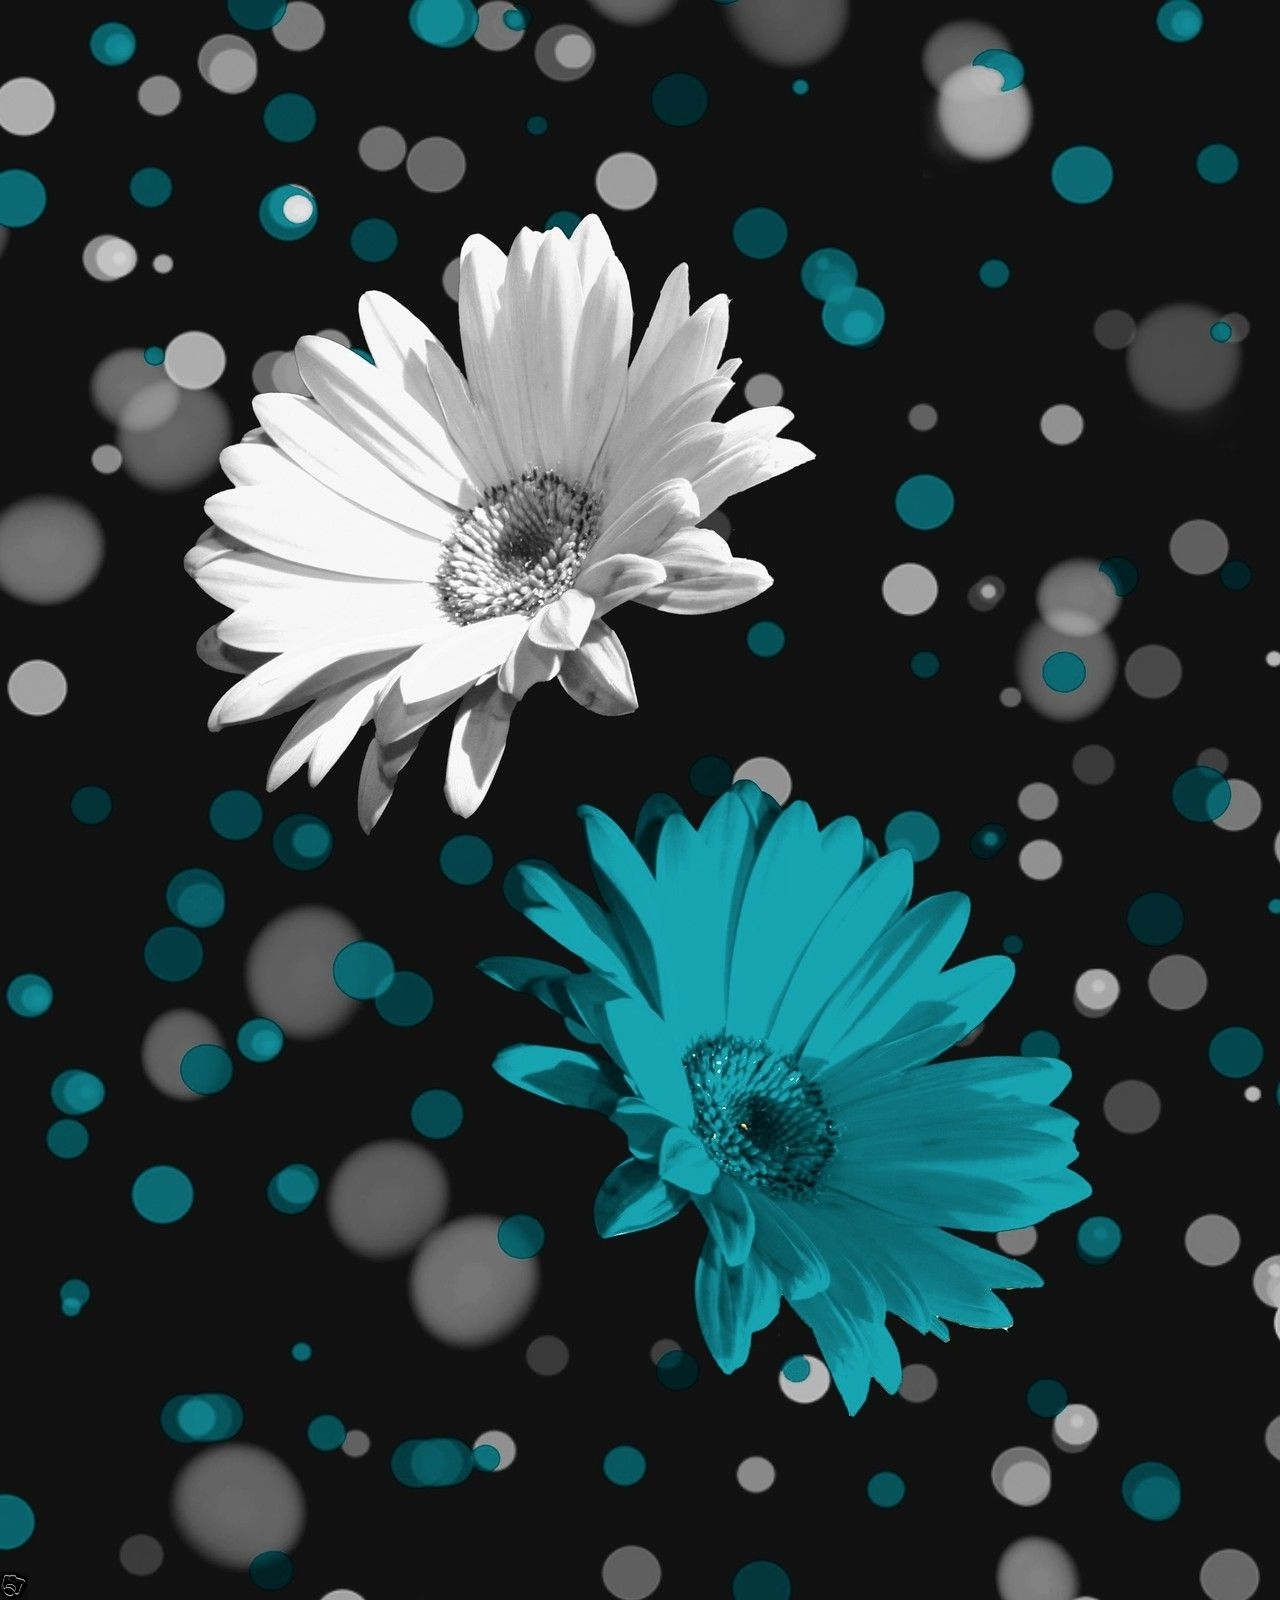 Recent Black And Teal Wall Art Intended For Black White Teal Daisy Flowers Wall Art Home Decor Matted Picture (View 6 of 15)